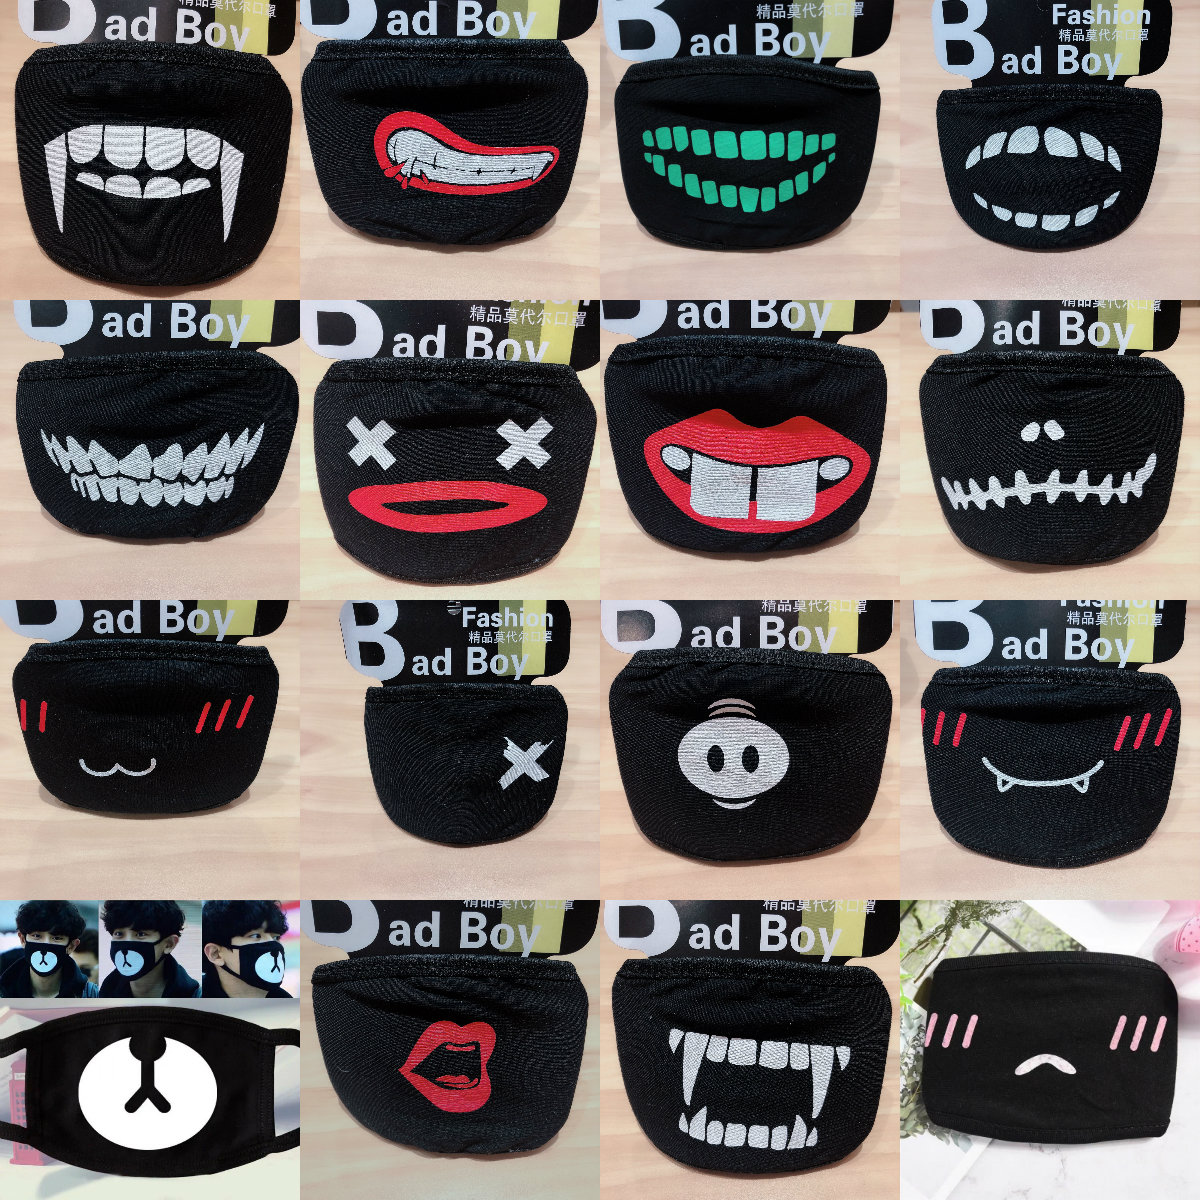 Unisex Mask Mouth-muffle Dustproof Respirator Cute Anti-Dust Mouth Covers Expression Mouth Mask Cotton Black Mouth Mask